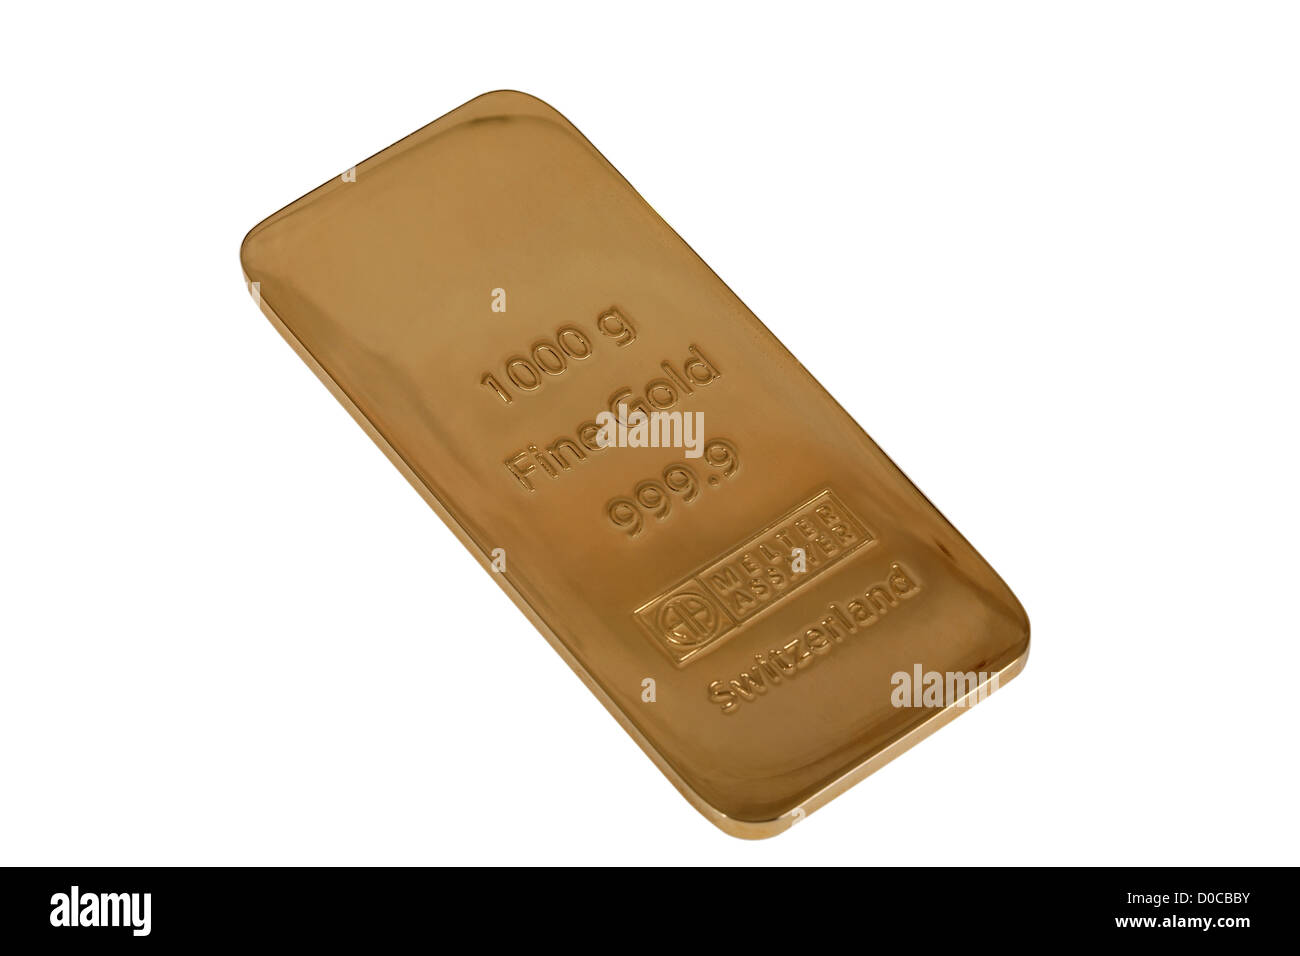 Ingot of gold in weight of 1000 gramme. Isolated on a white background. - Stock Image